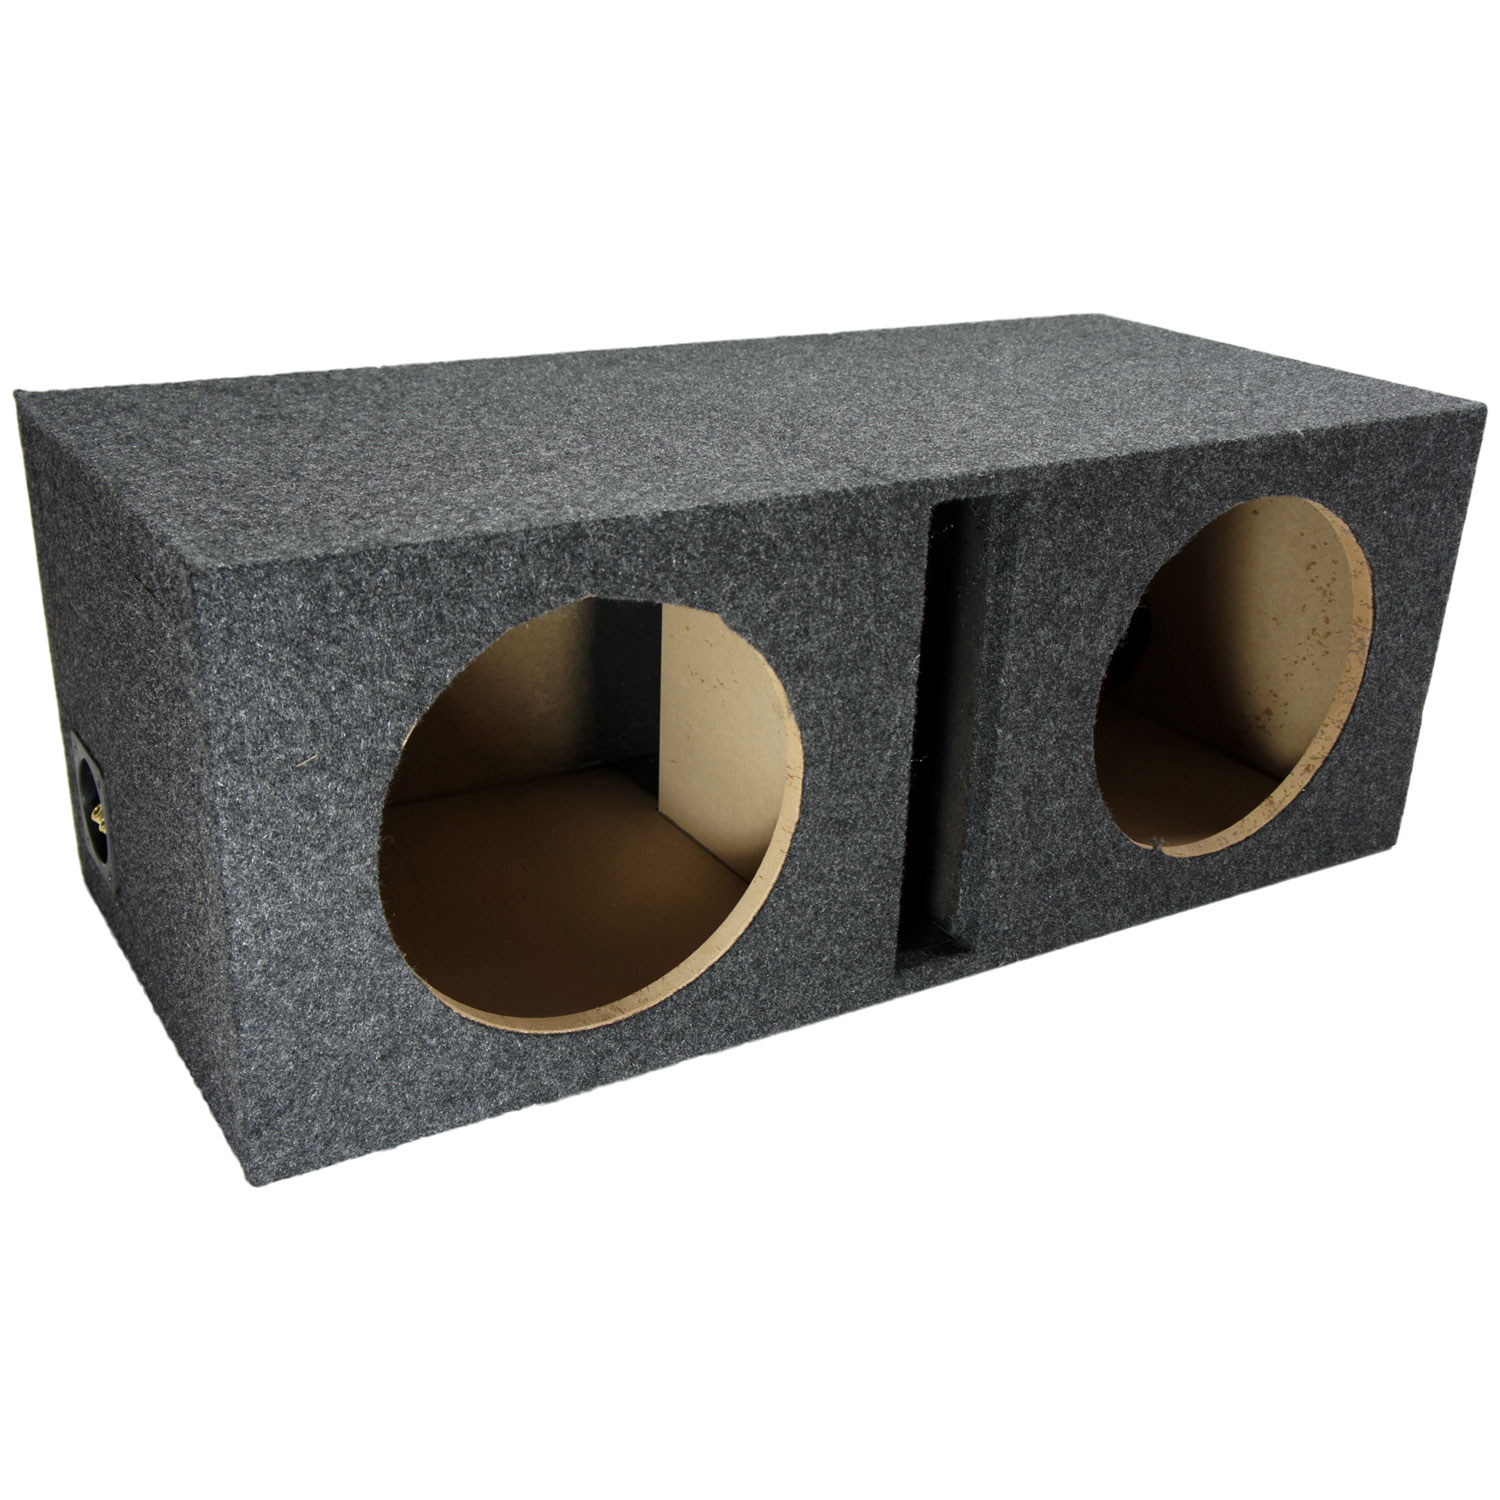 "Car Audio Subwoofer Dual 10"" Vented Sub Box Enclosure"